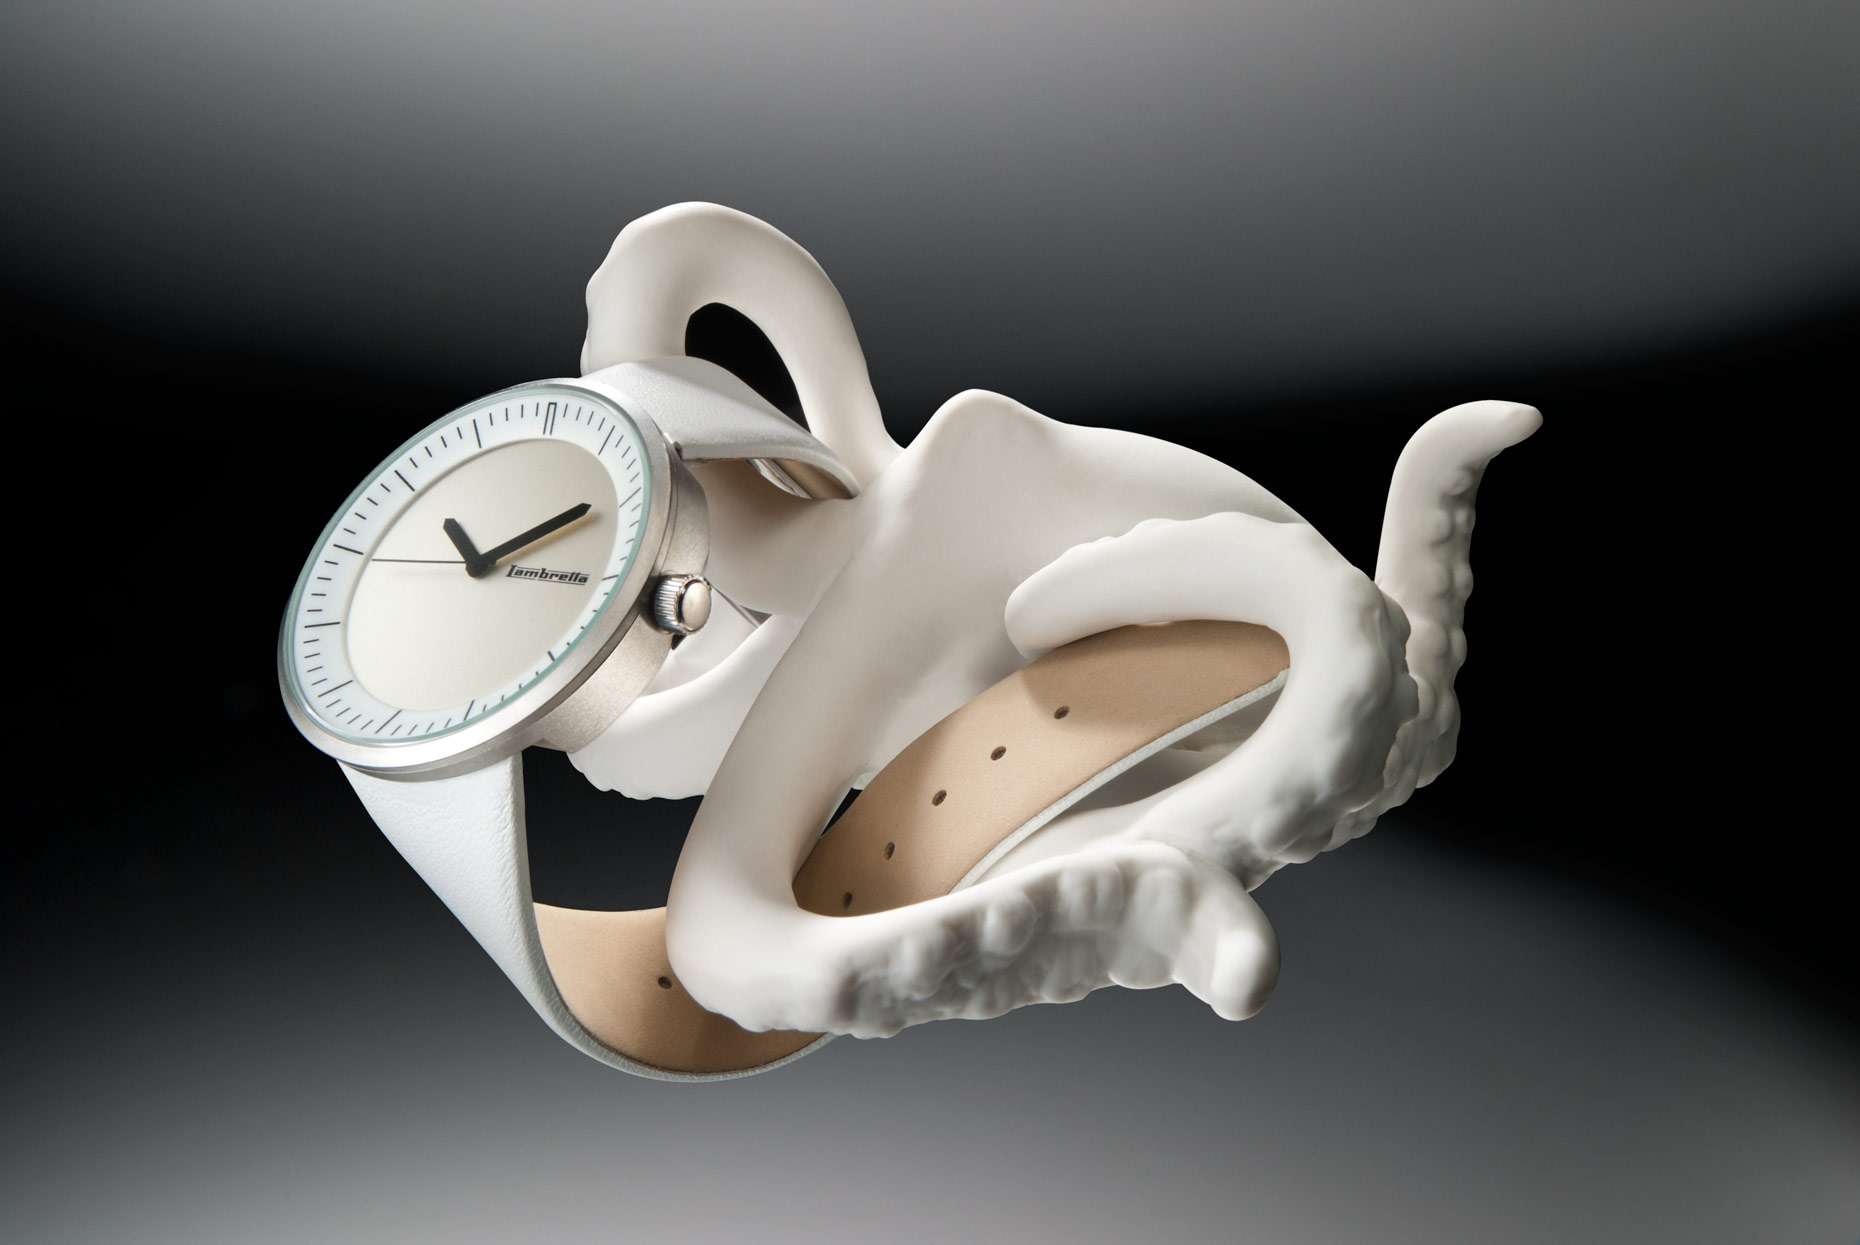 Octopus_White_Lambretta_Watch